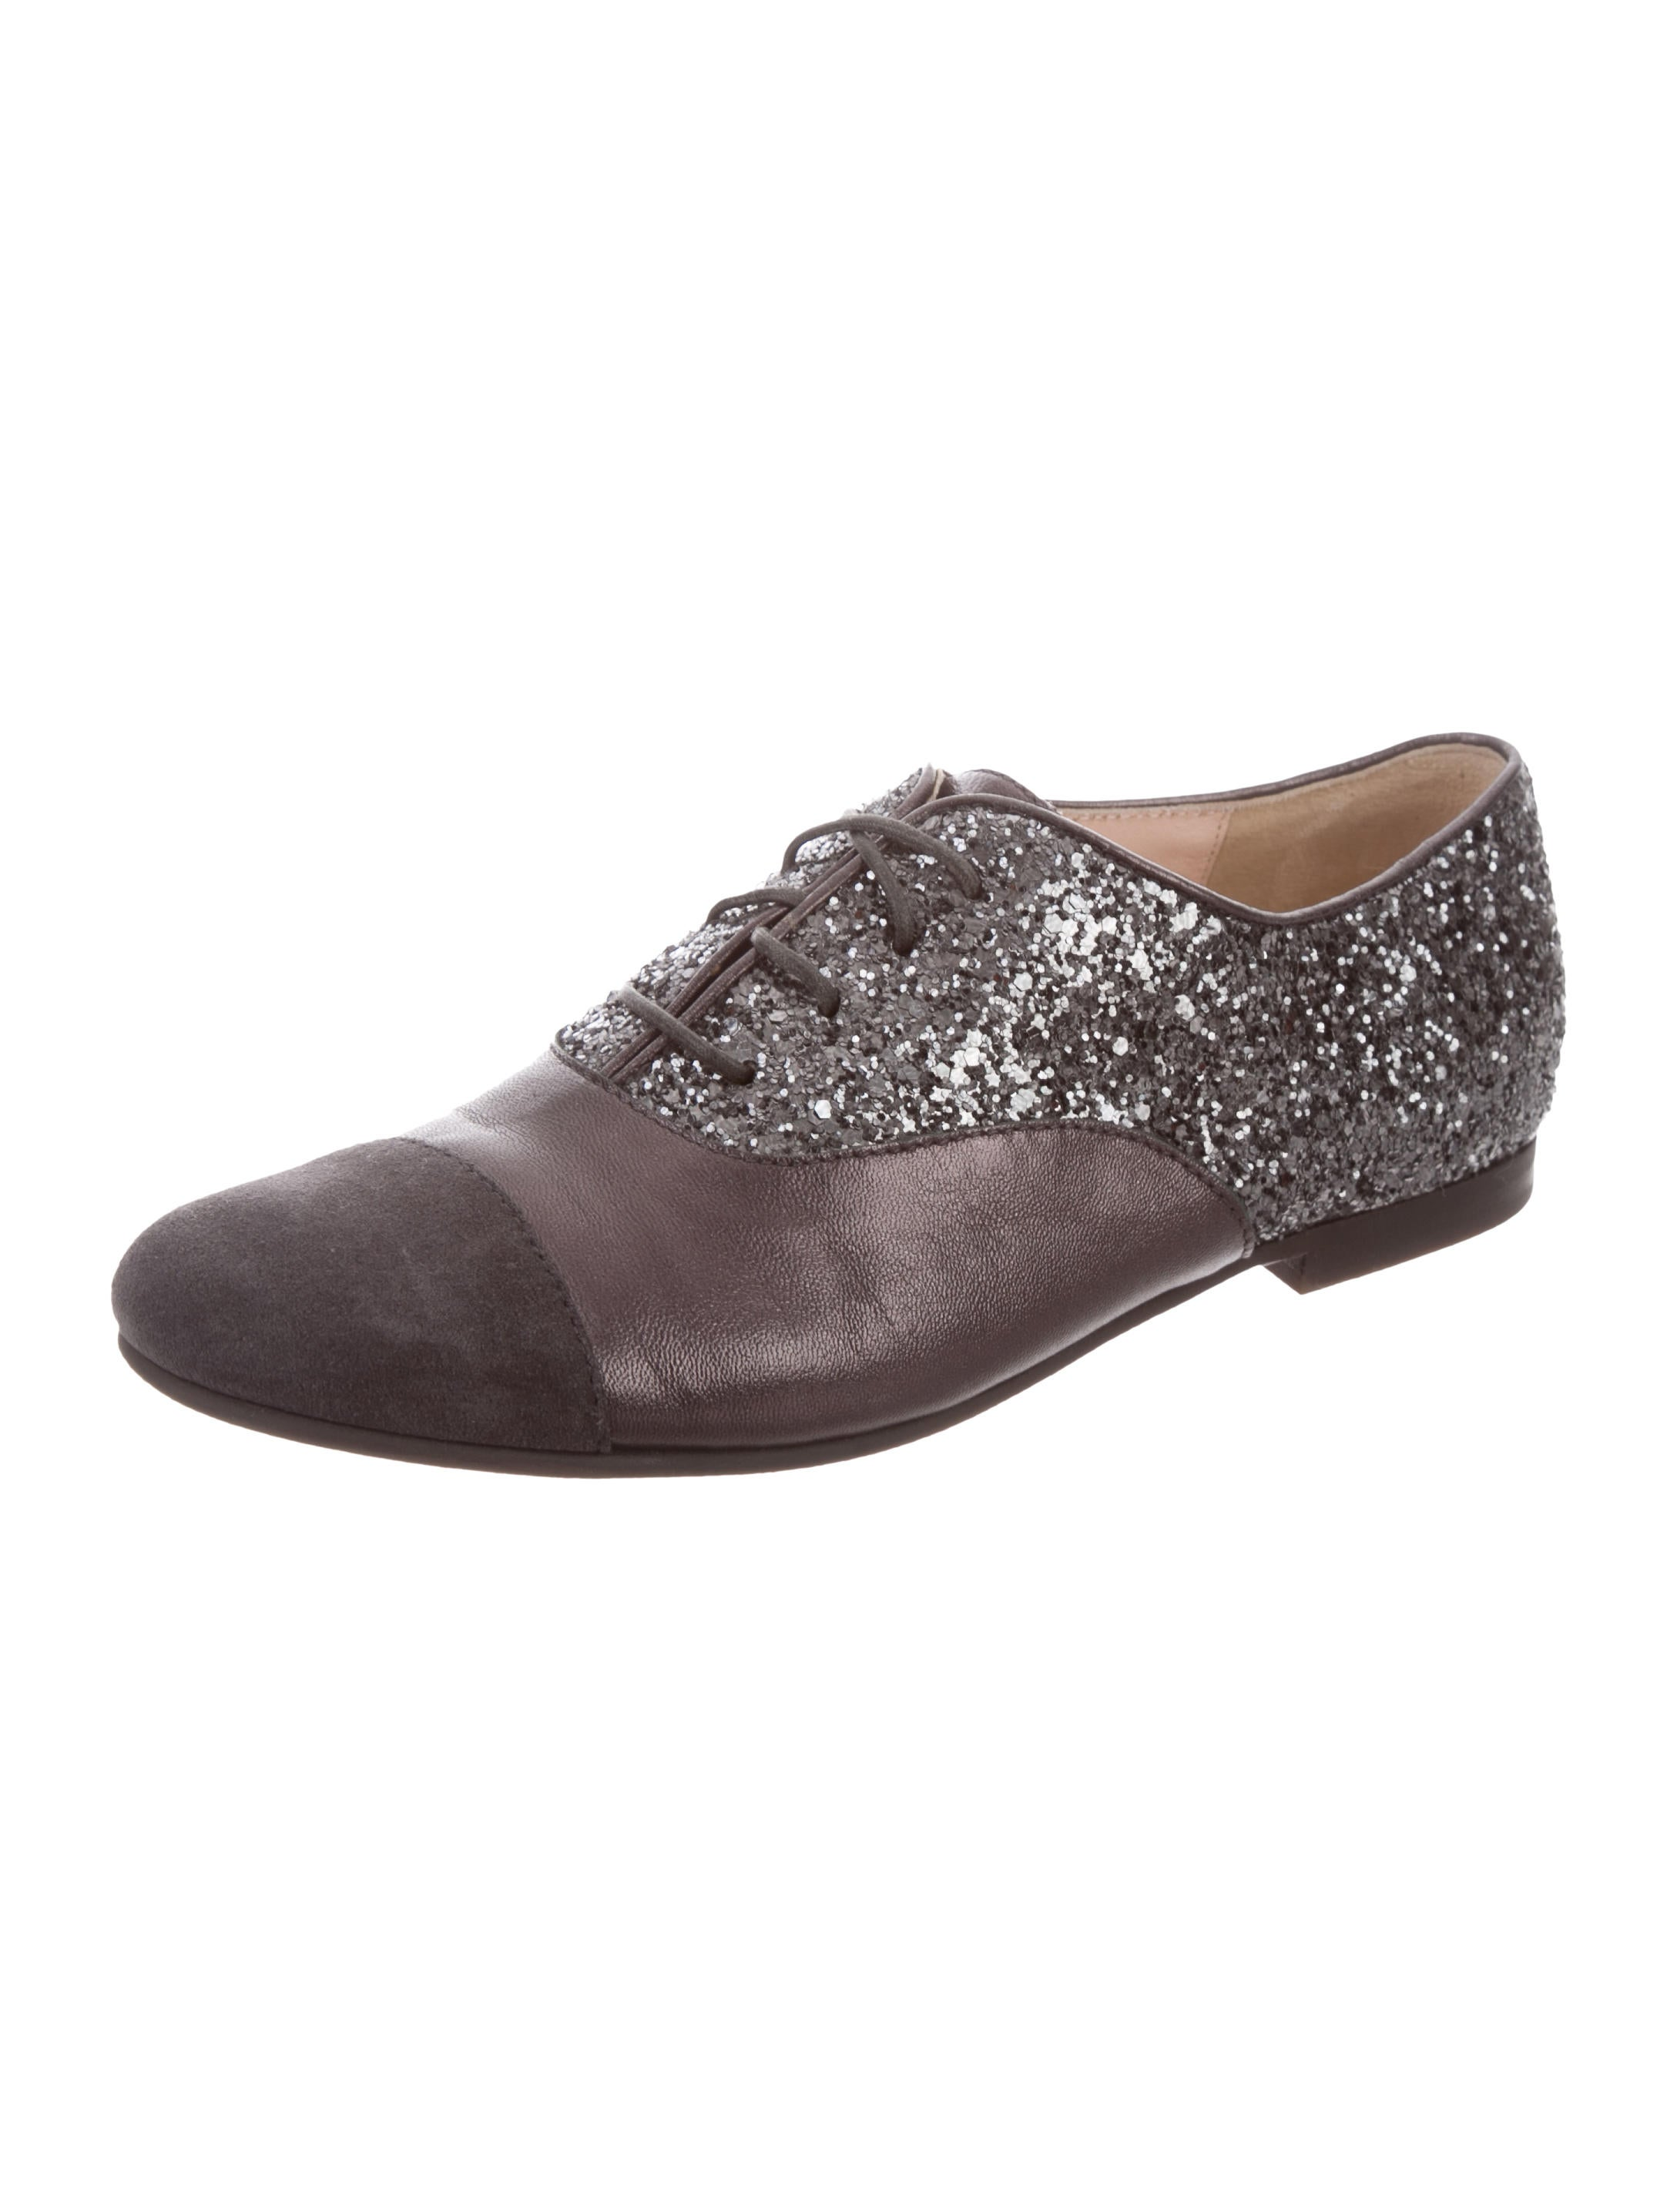 Christian Dior Glitter Cap-Toe Oxfords from china free shipping nicekicks cheap online sale high quality amazing price visit new cheap price RCEiuNmZ1z